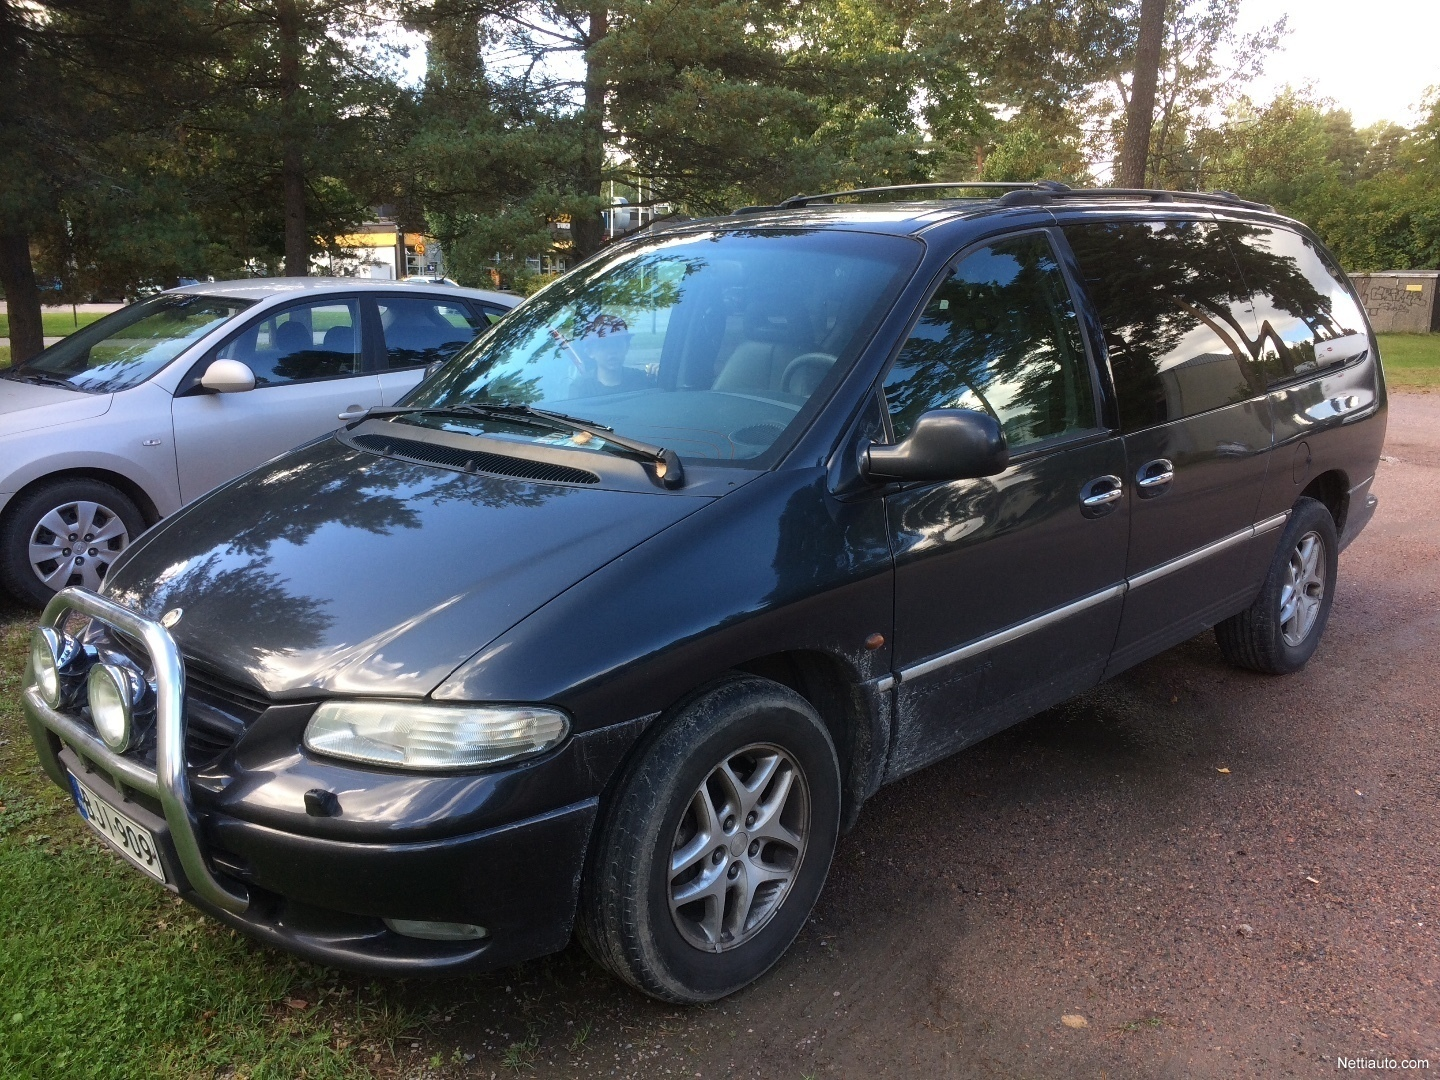 chrysler grand voyager mpv 2000 used vehicle nettiauto. Black Bedroom Furniture Sets. Home Design Ideas